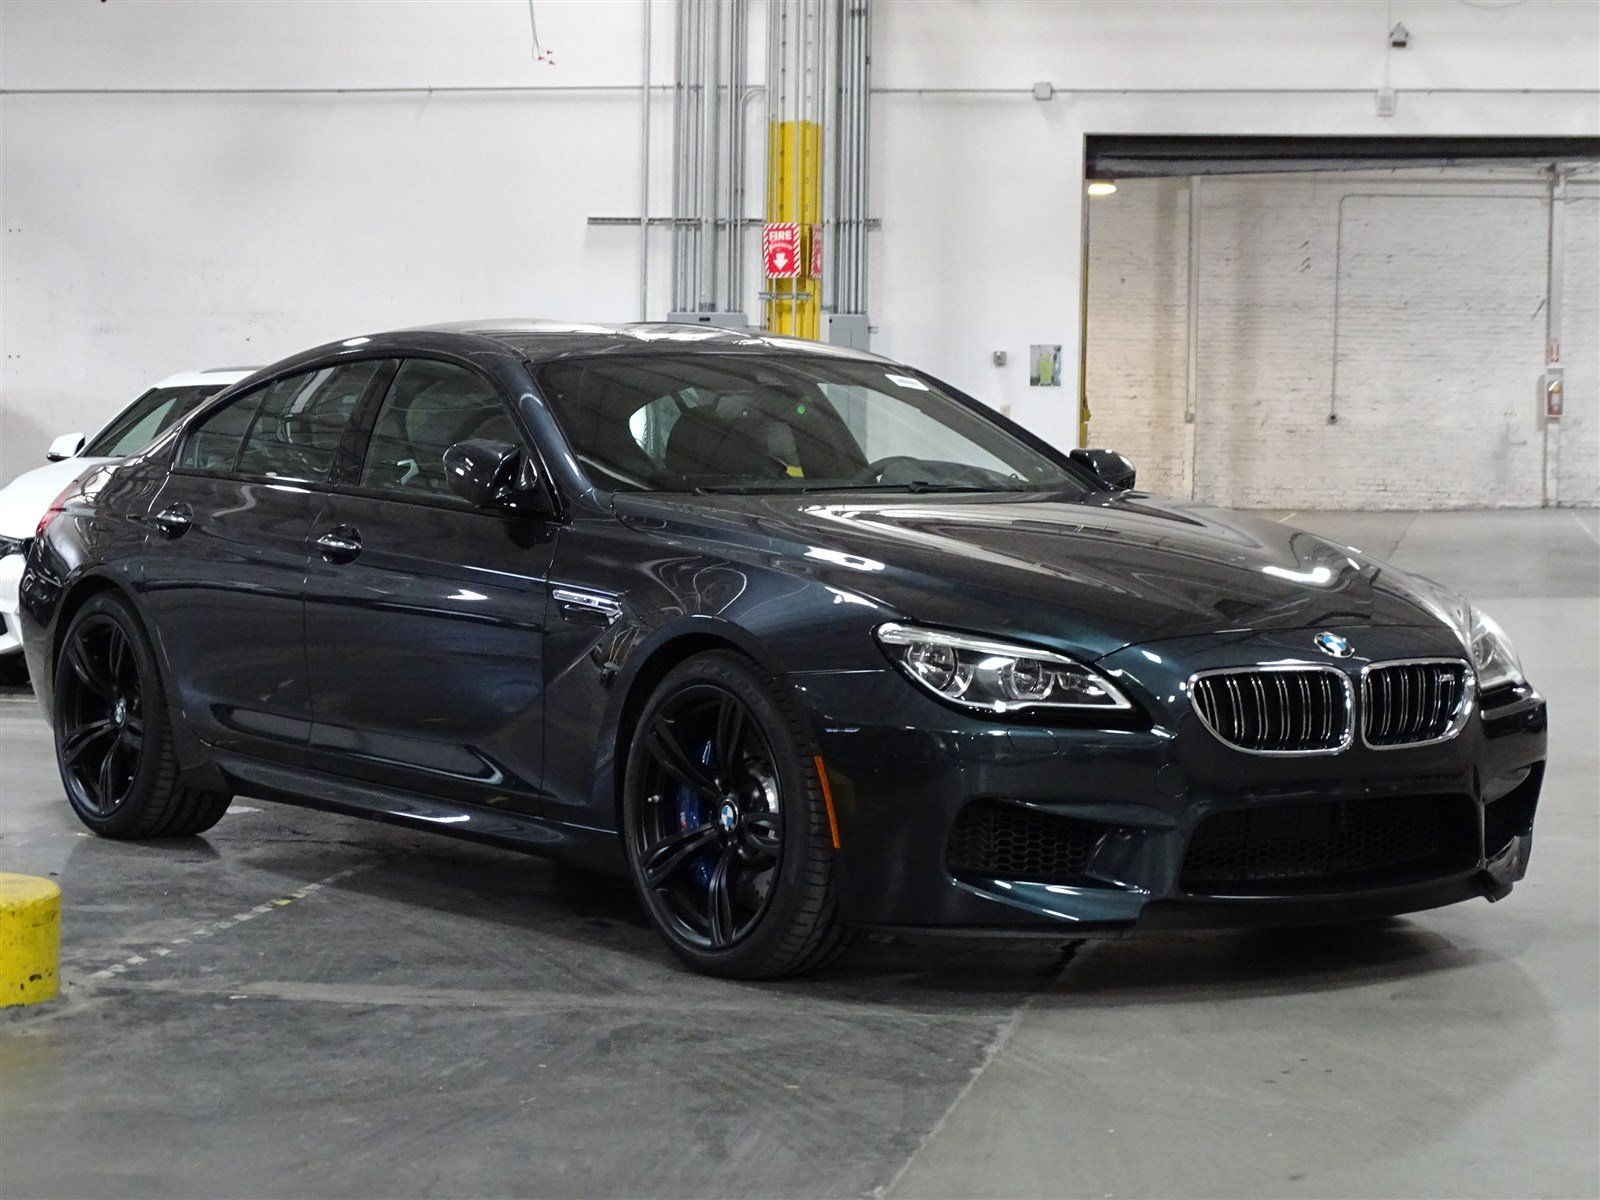 Certified Pre Owned Bmw >> New 2018 BMW M6 Base 4dr Car in San Francisco #18623 | BMW of San Francisco